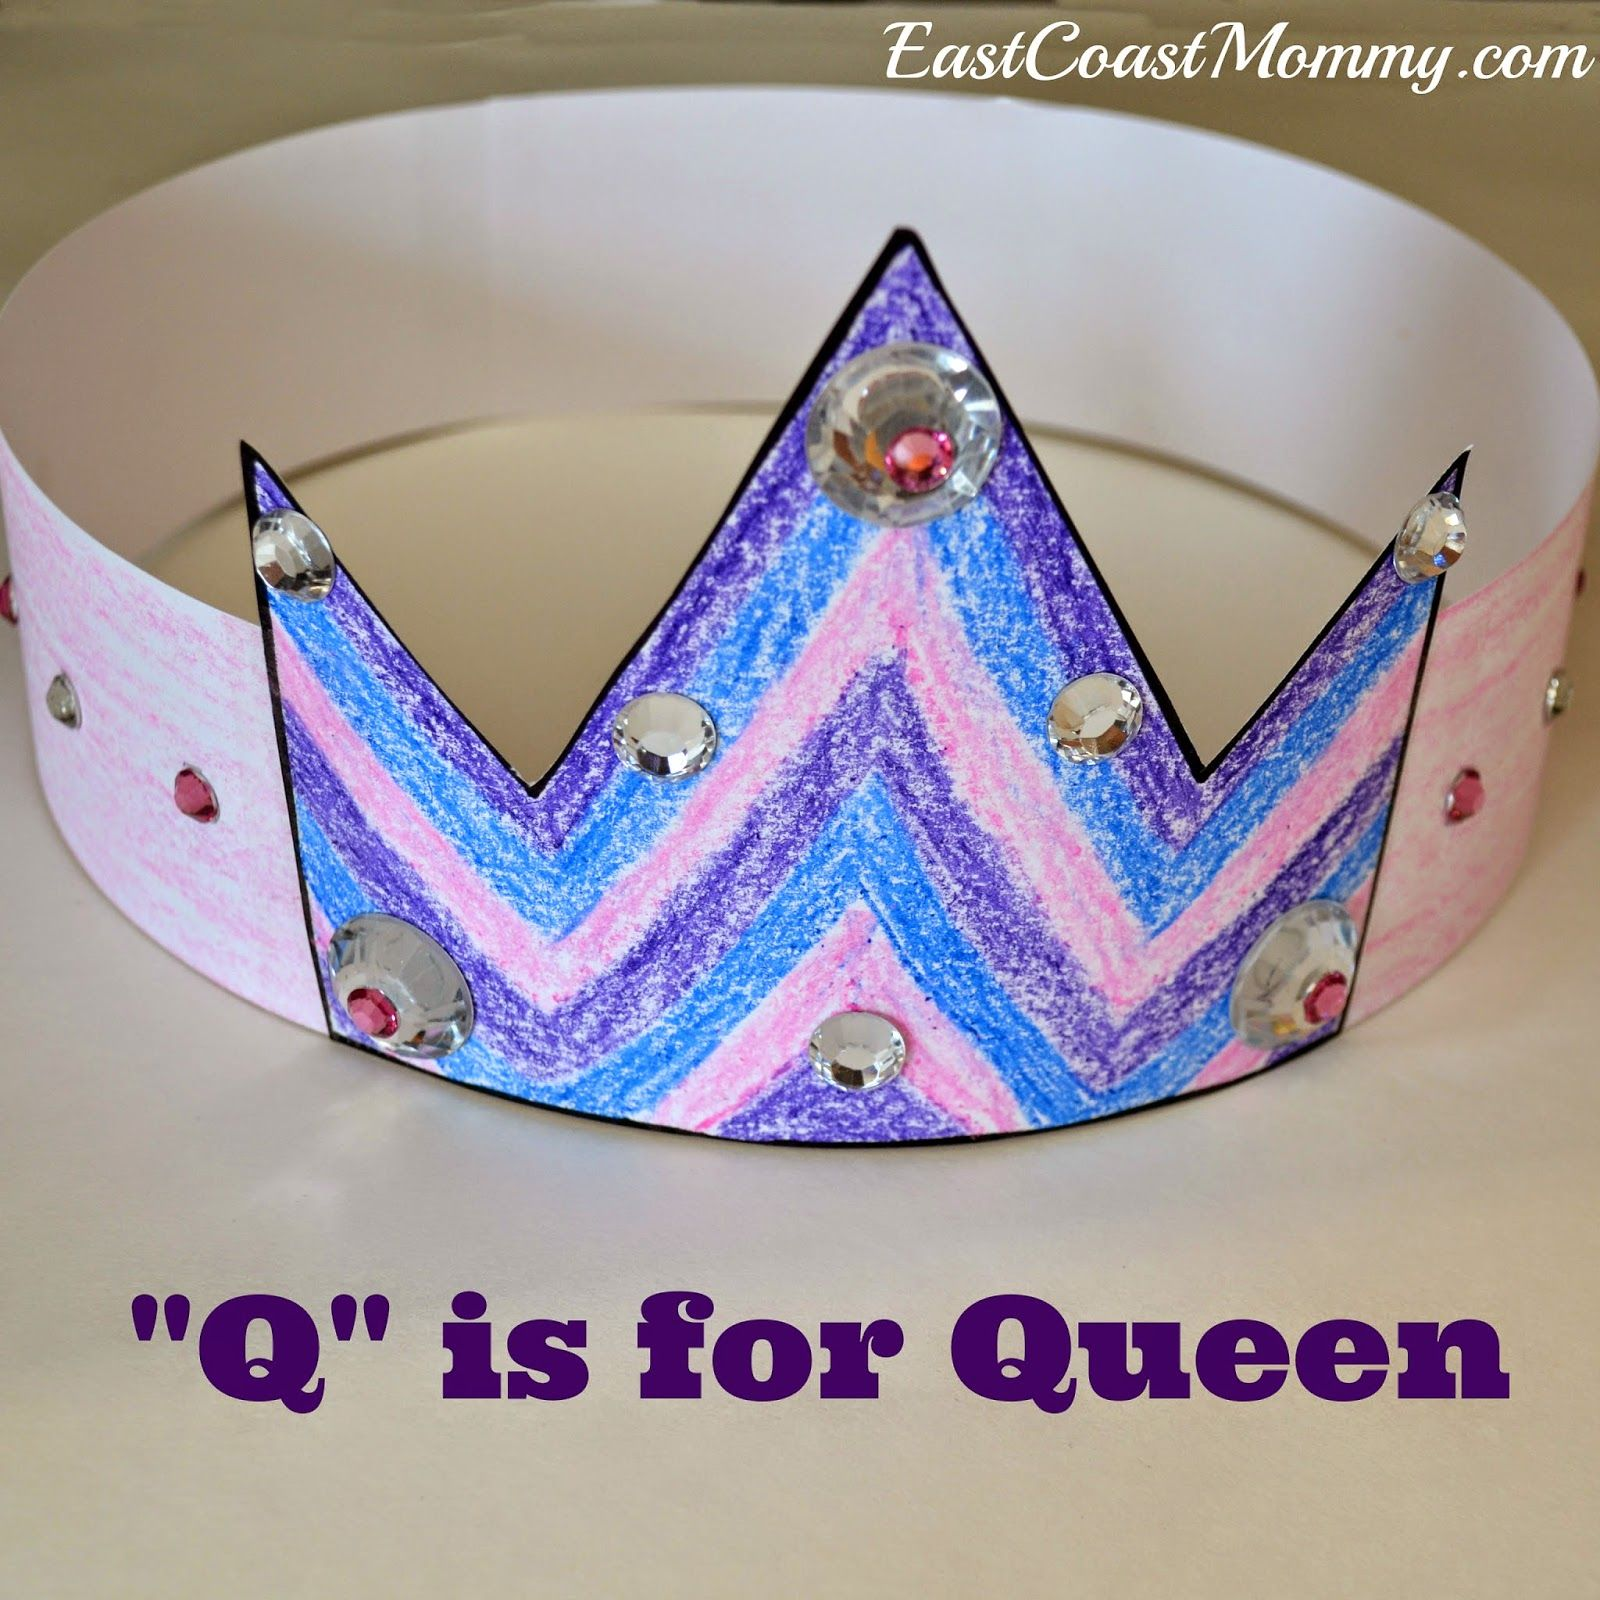 Alphabet Craft - Letter Q craft. {Free printable crown template included.}